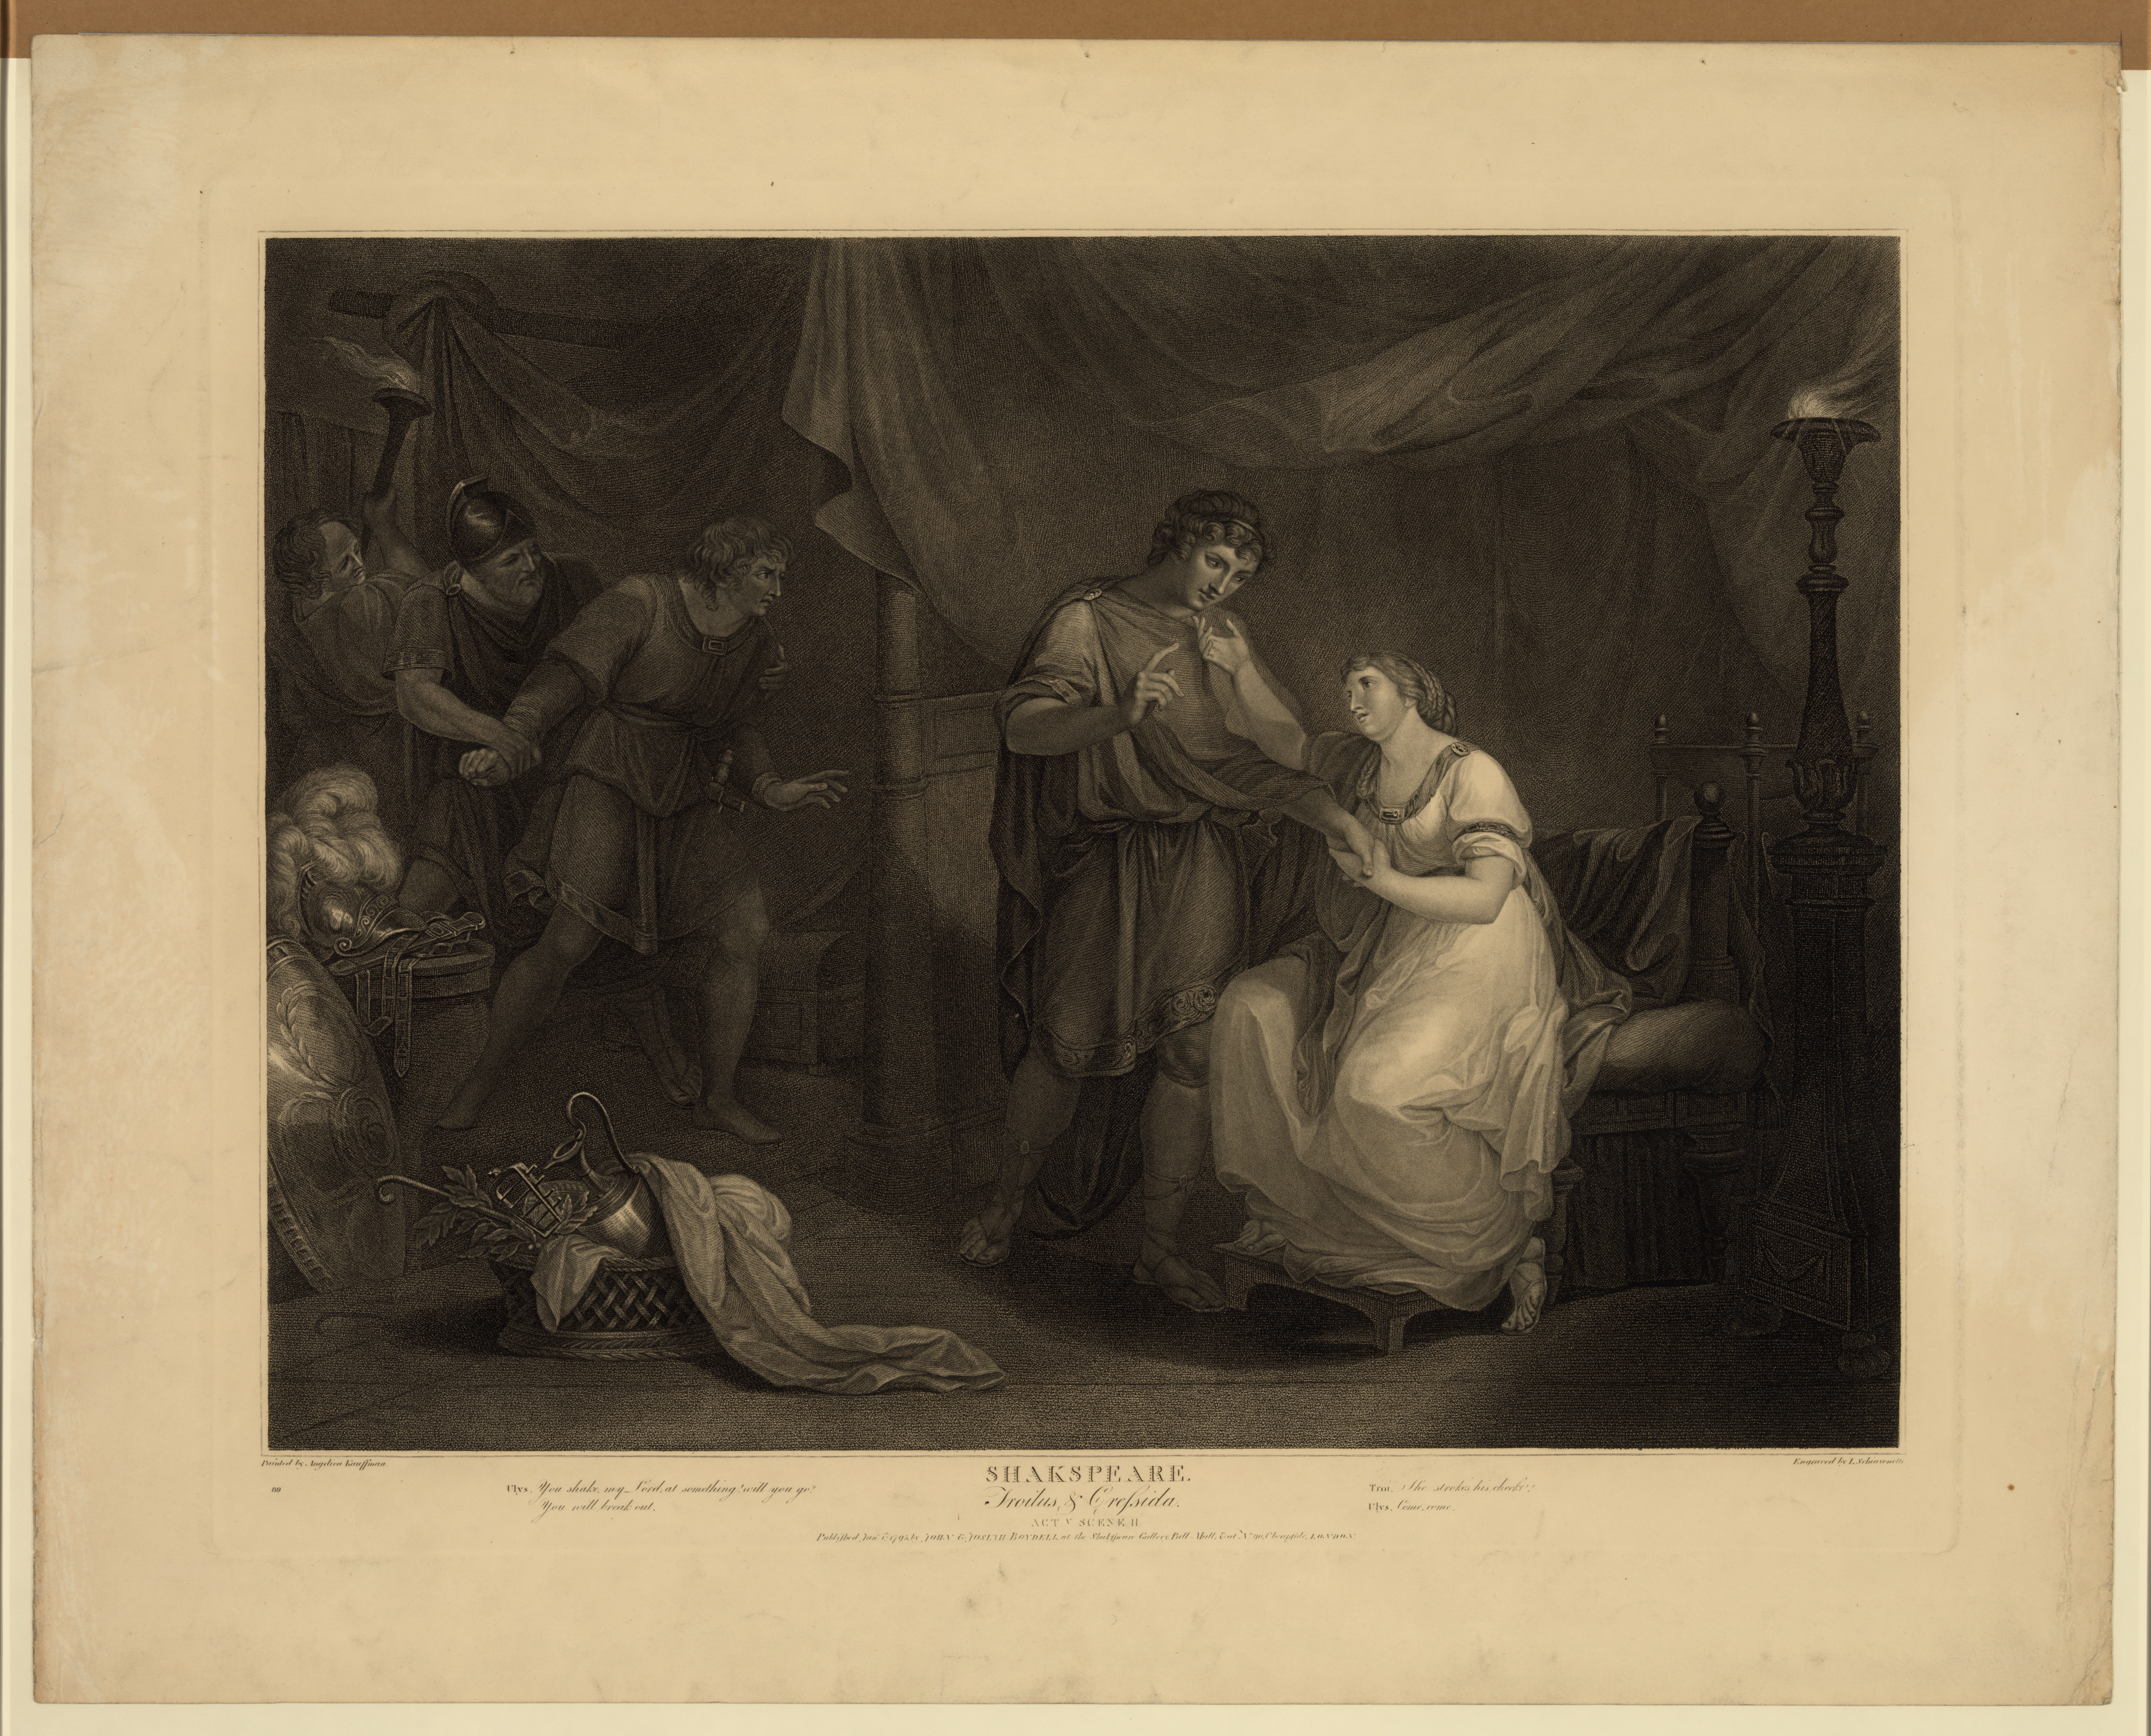 abdication scene act v scene i in edward ii Newly discovered lambeth palace archives revealing that archbishop cosmo gordon lang betrayed king edward viii – the monarch he was supposed to serve – and orchestrated the abdication crisis.